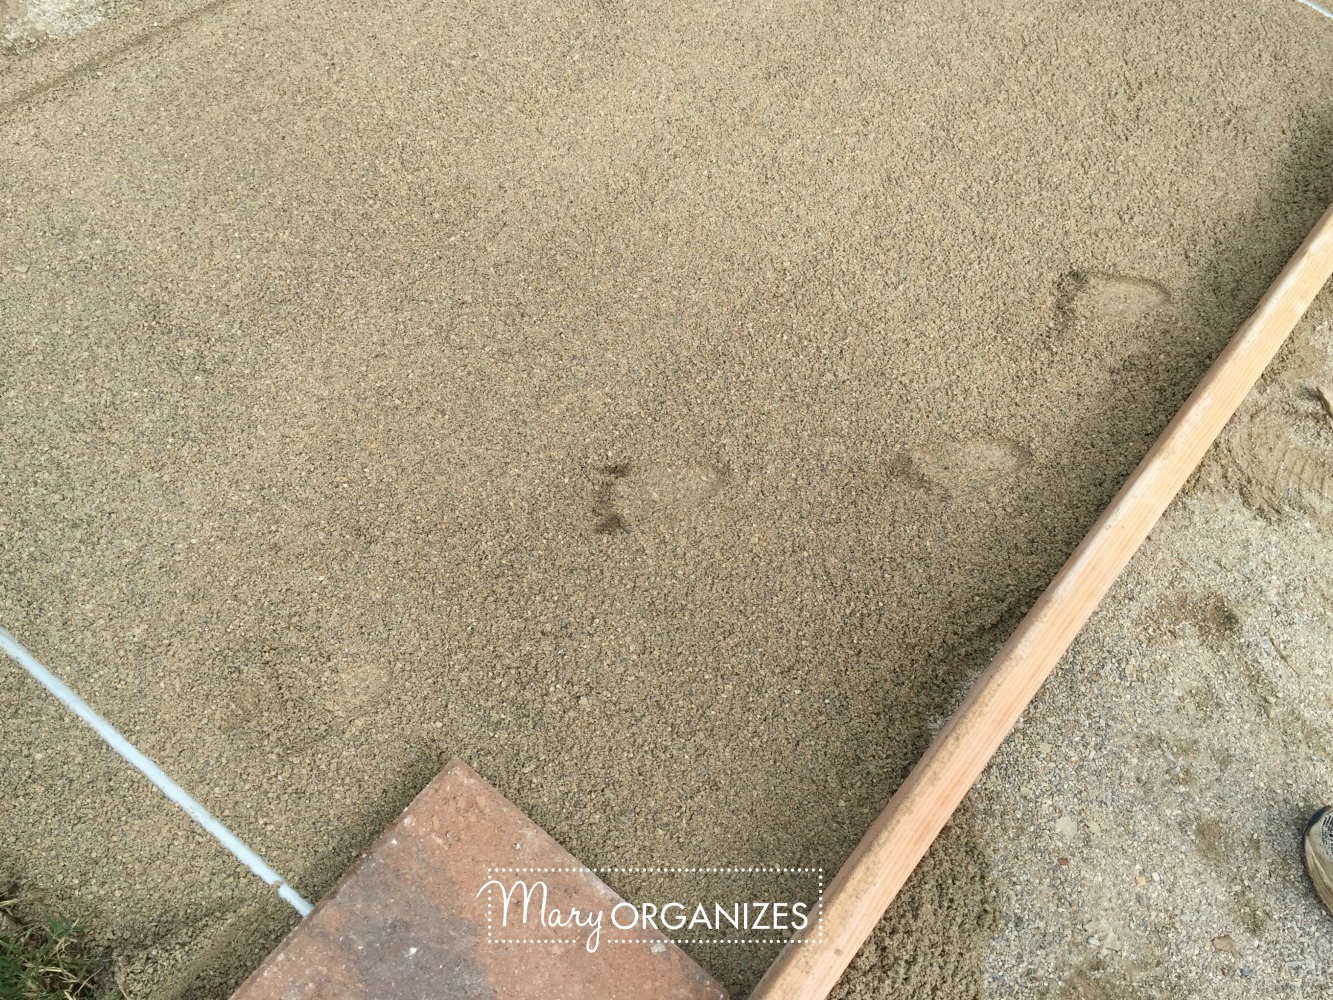 How To Install Paver Patio - My Raised Garden Foundation 8